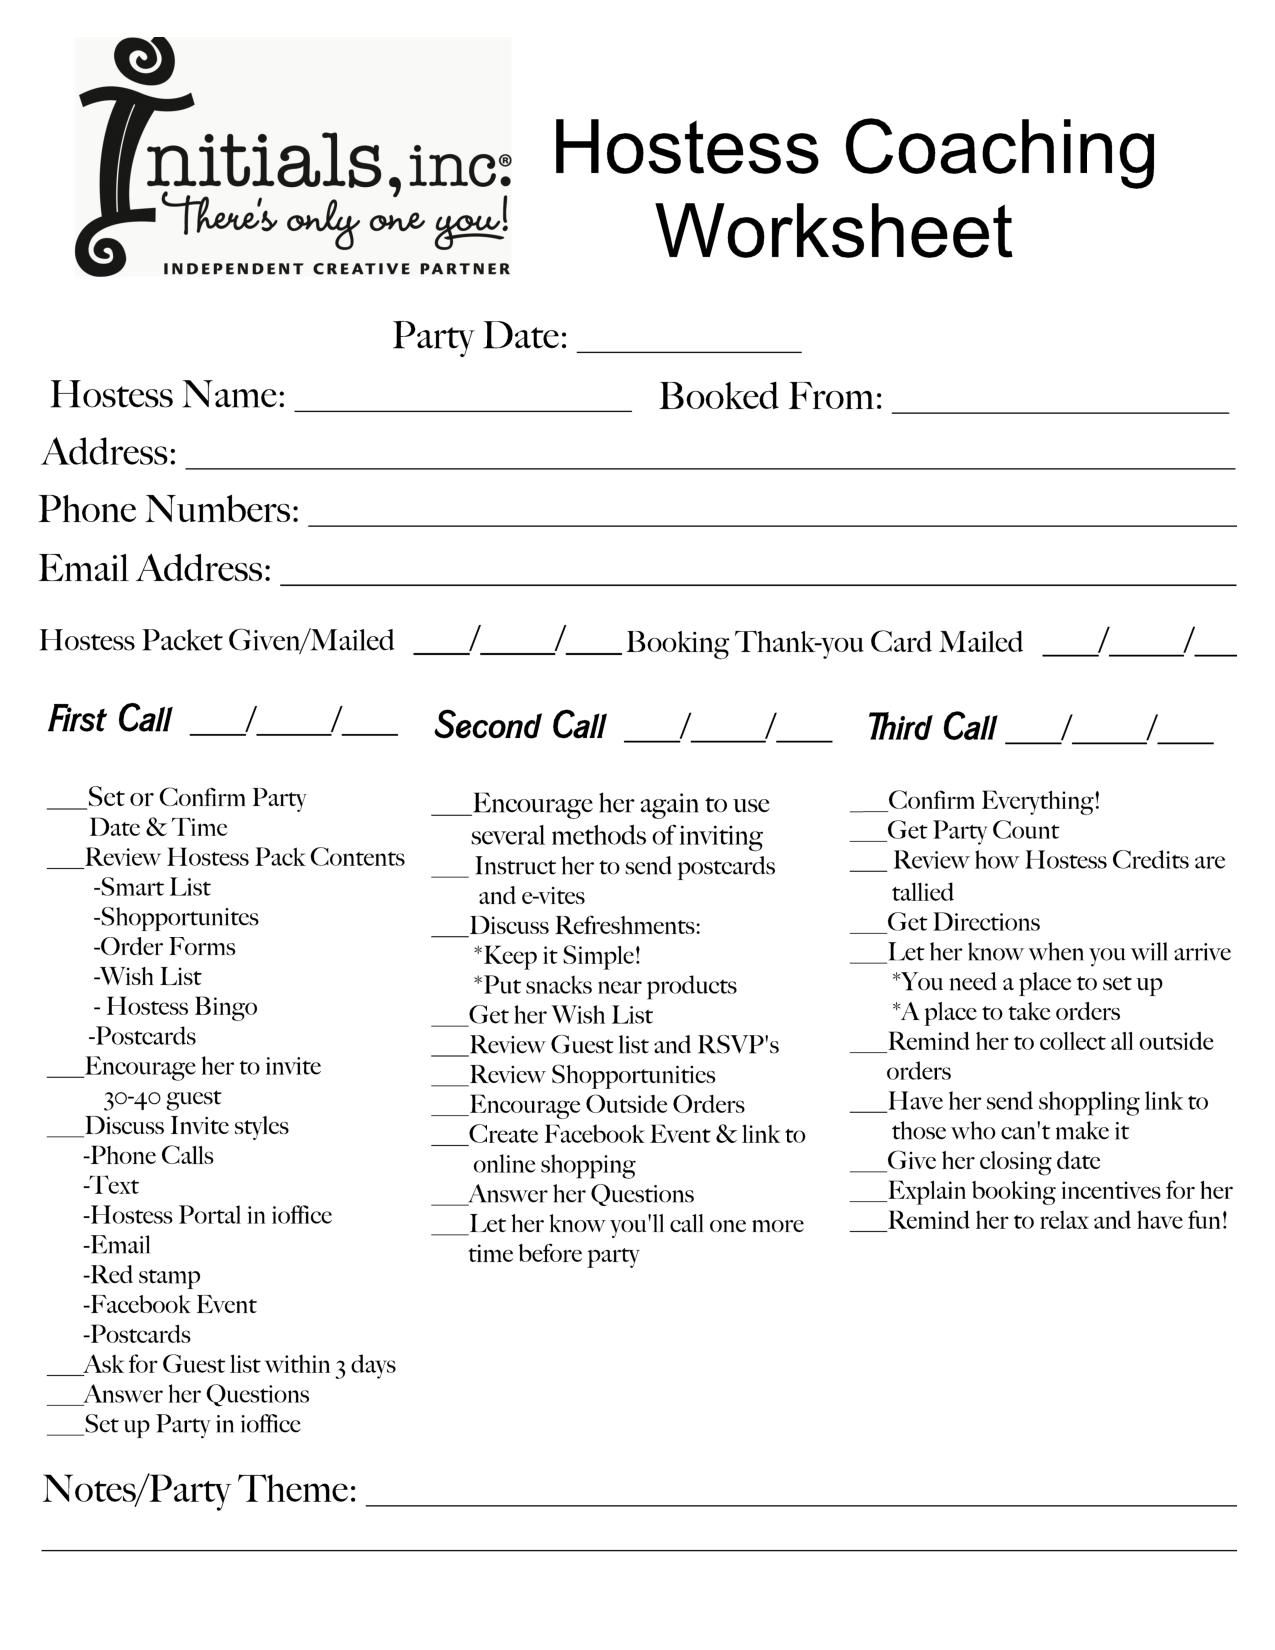 Hostess Coaching Worksheet